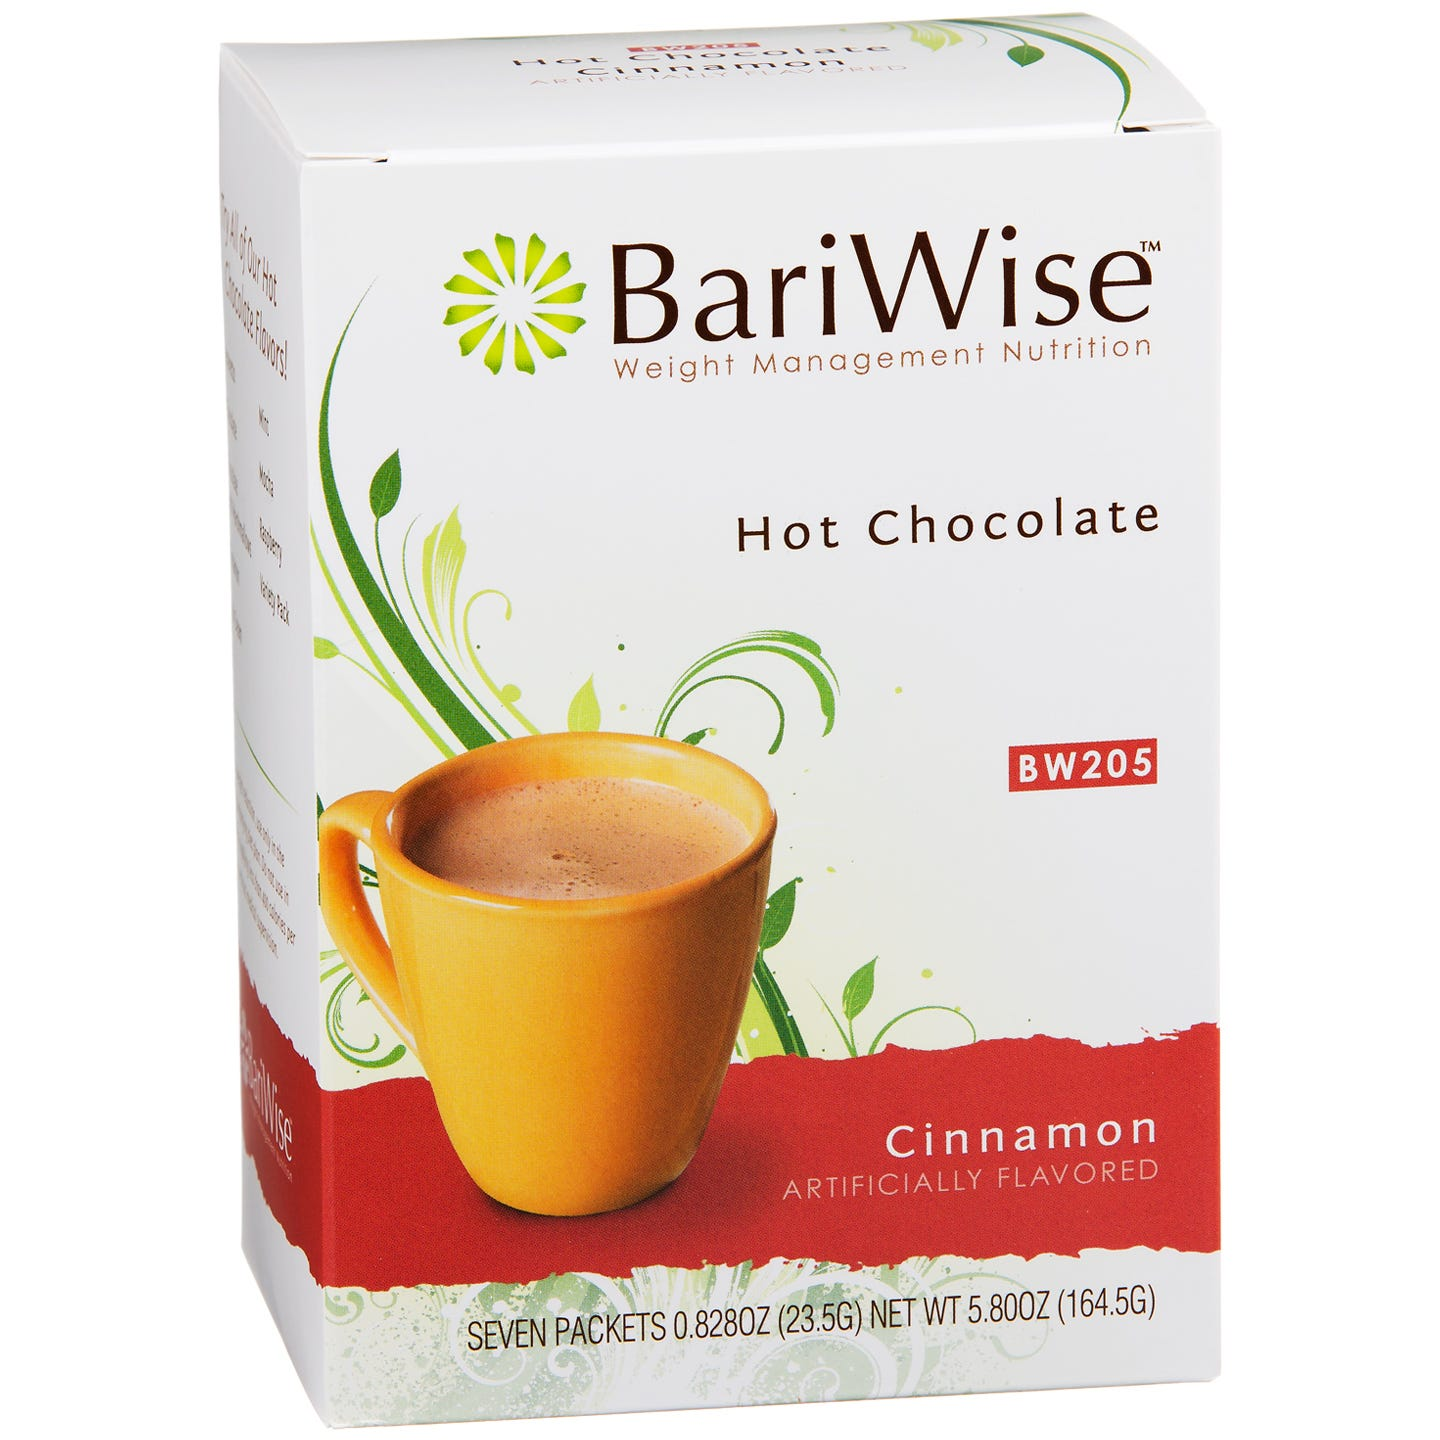 BariWise Protein Diet Hot Chocolate - Cinnamon